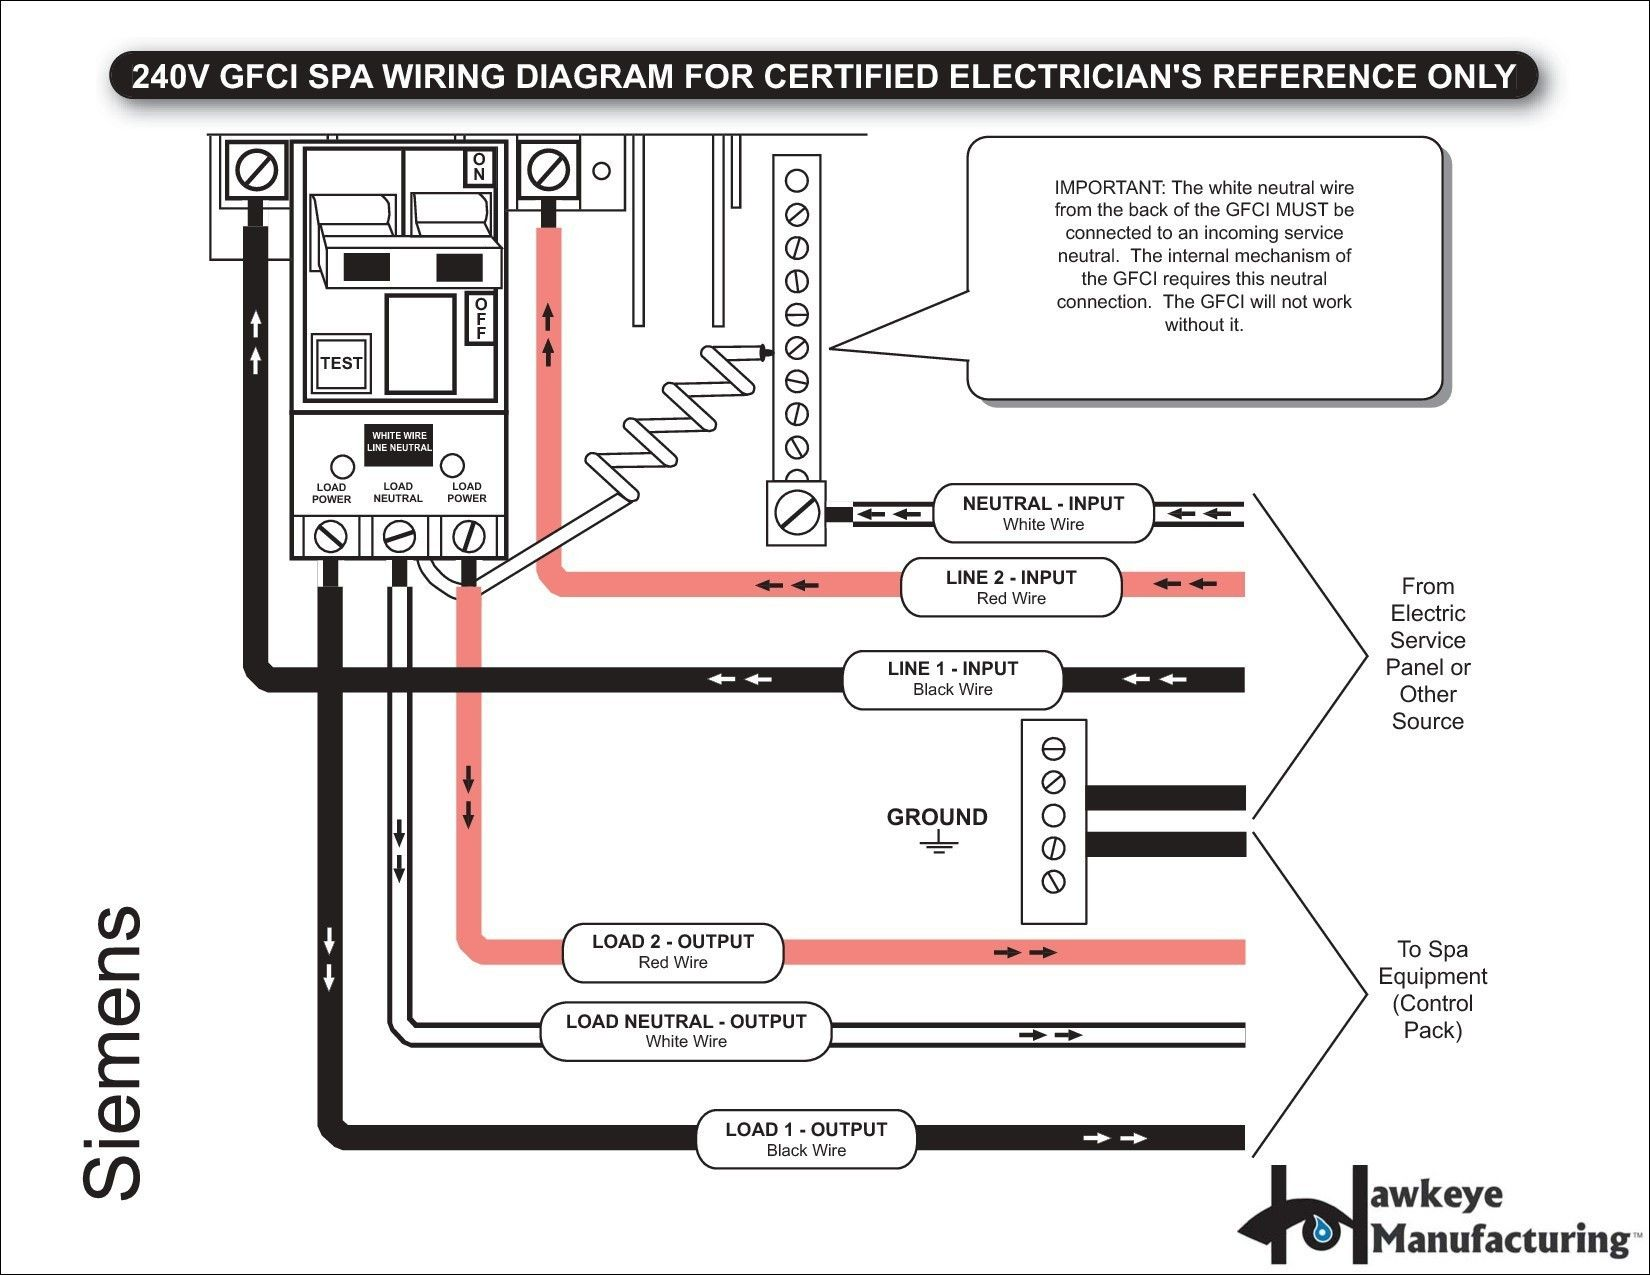 gfci breaker wiring diagram aspects of wiring and circuits balboa spa wiring diagram connecticut electric spa wiring diagram #7